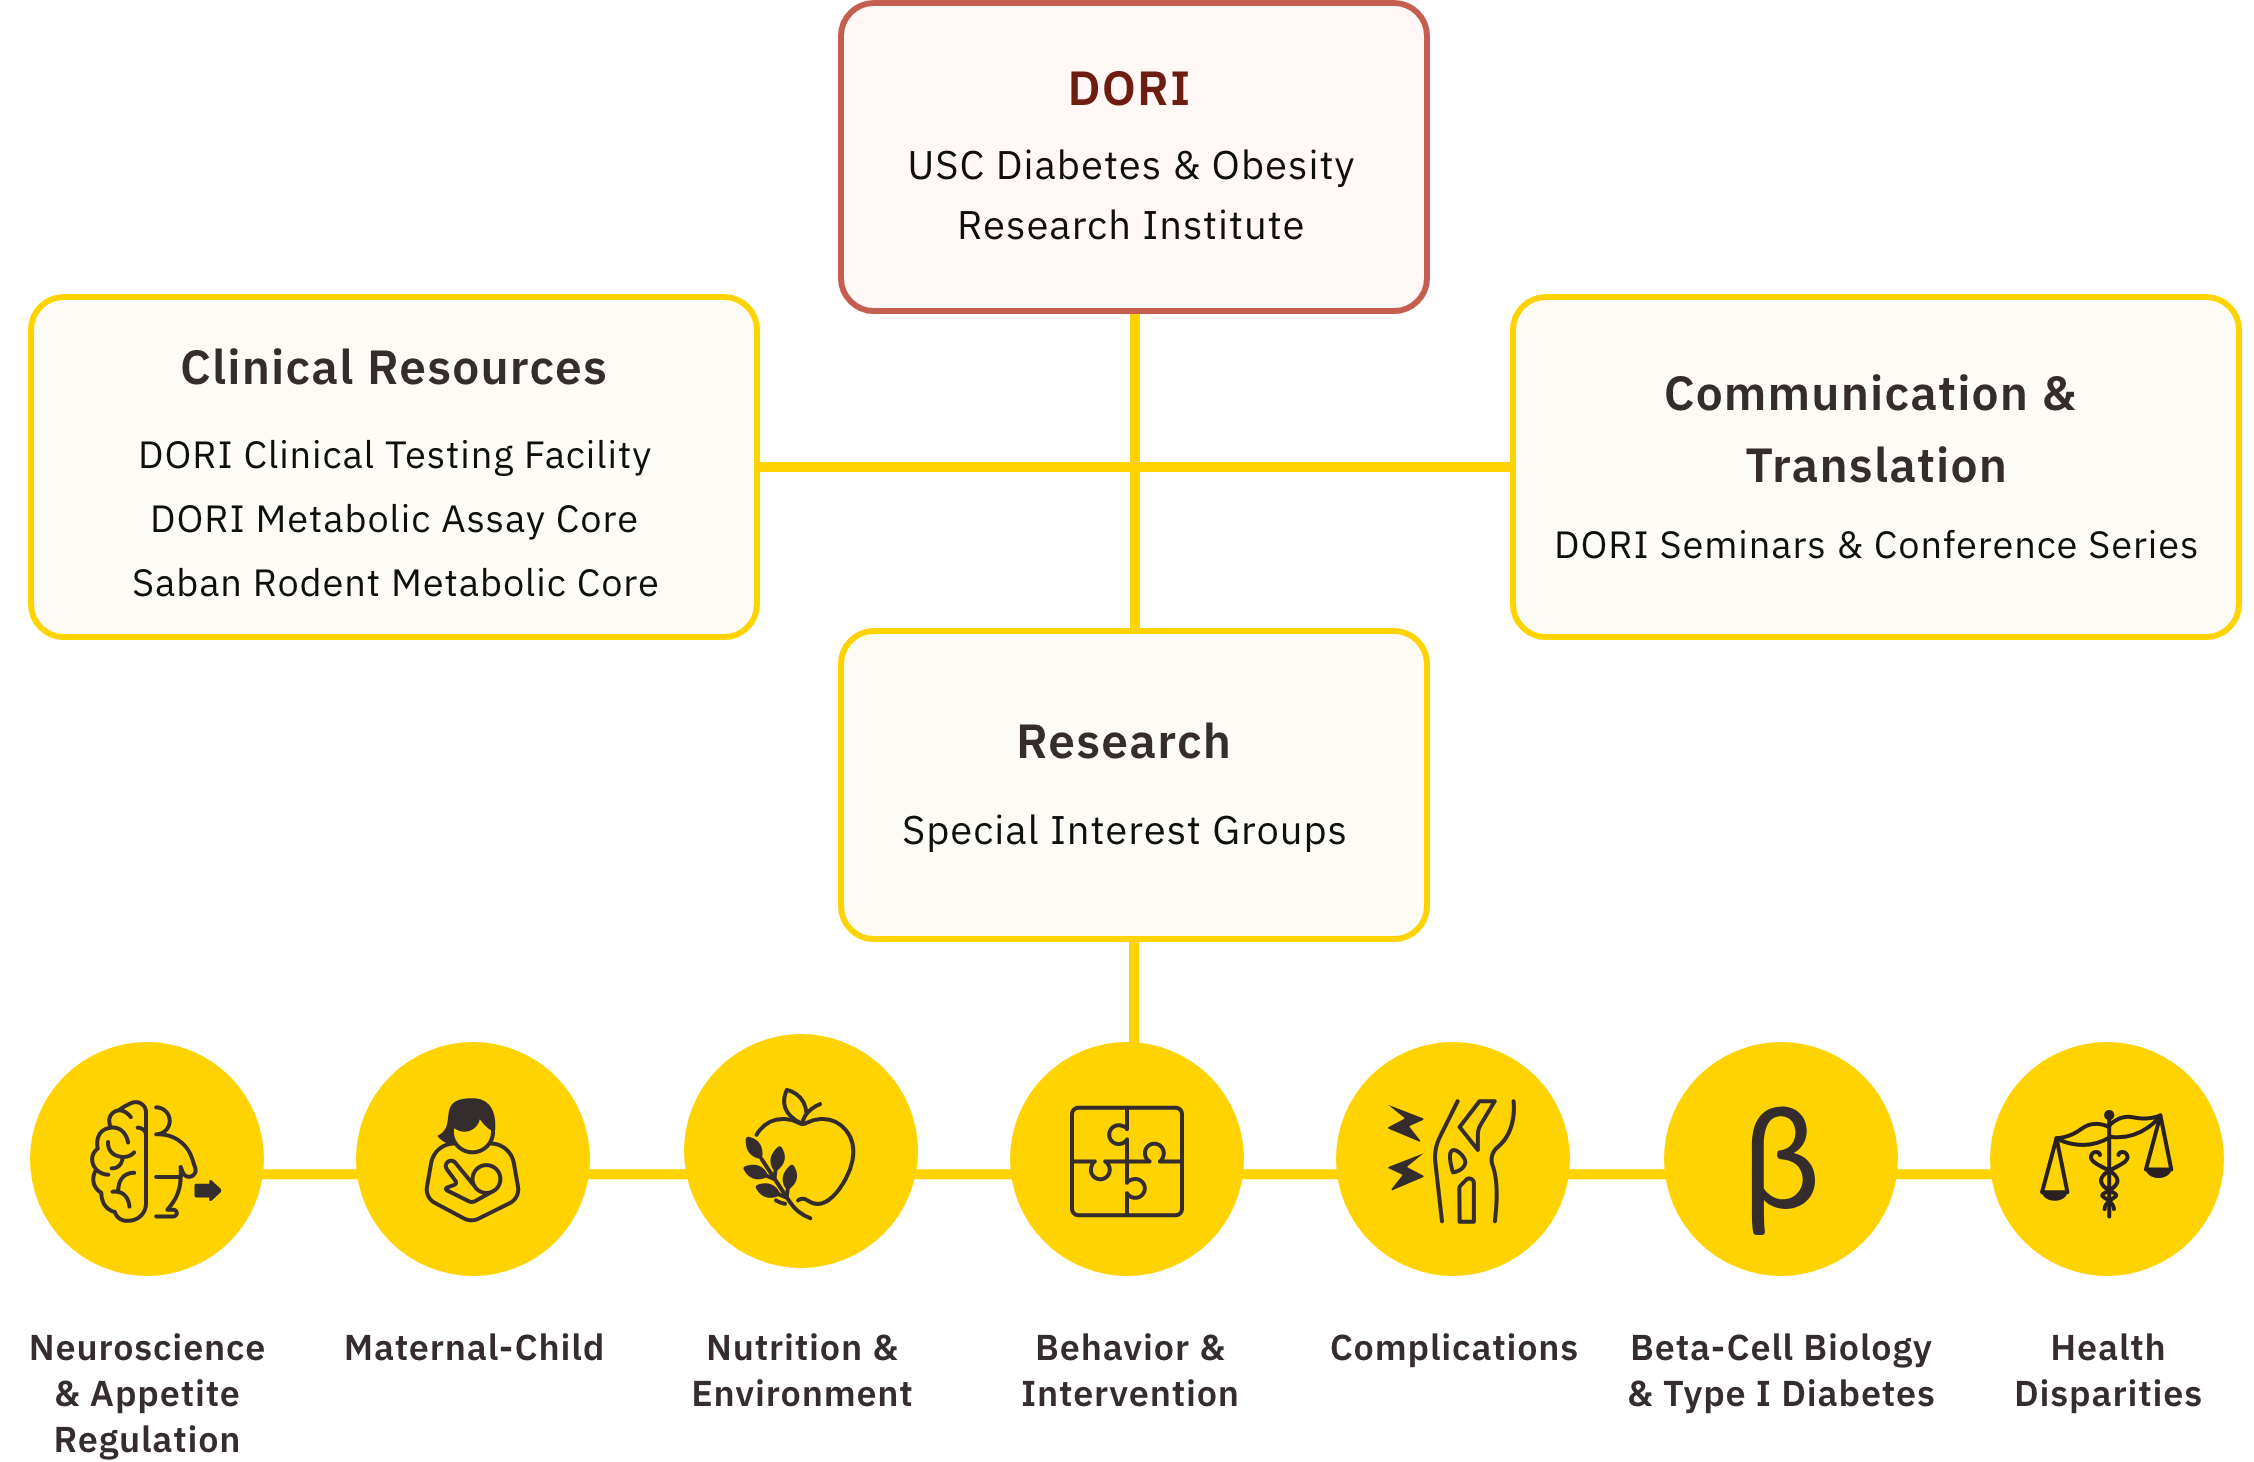 Overview of DORI structure showing Communication, Research, and Clinical Resources as the facets